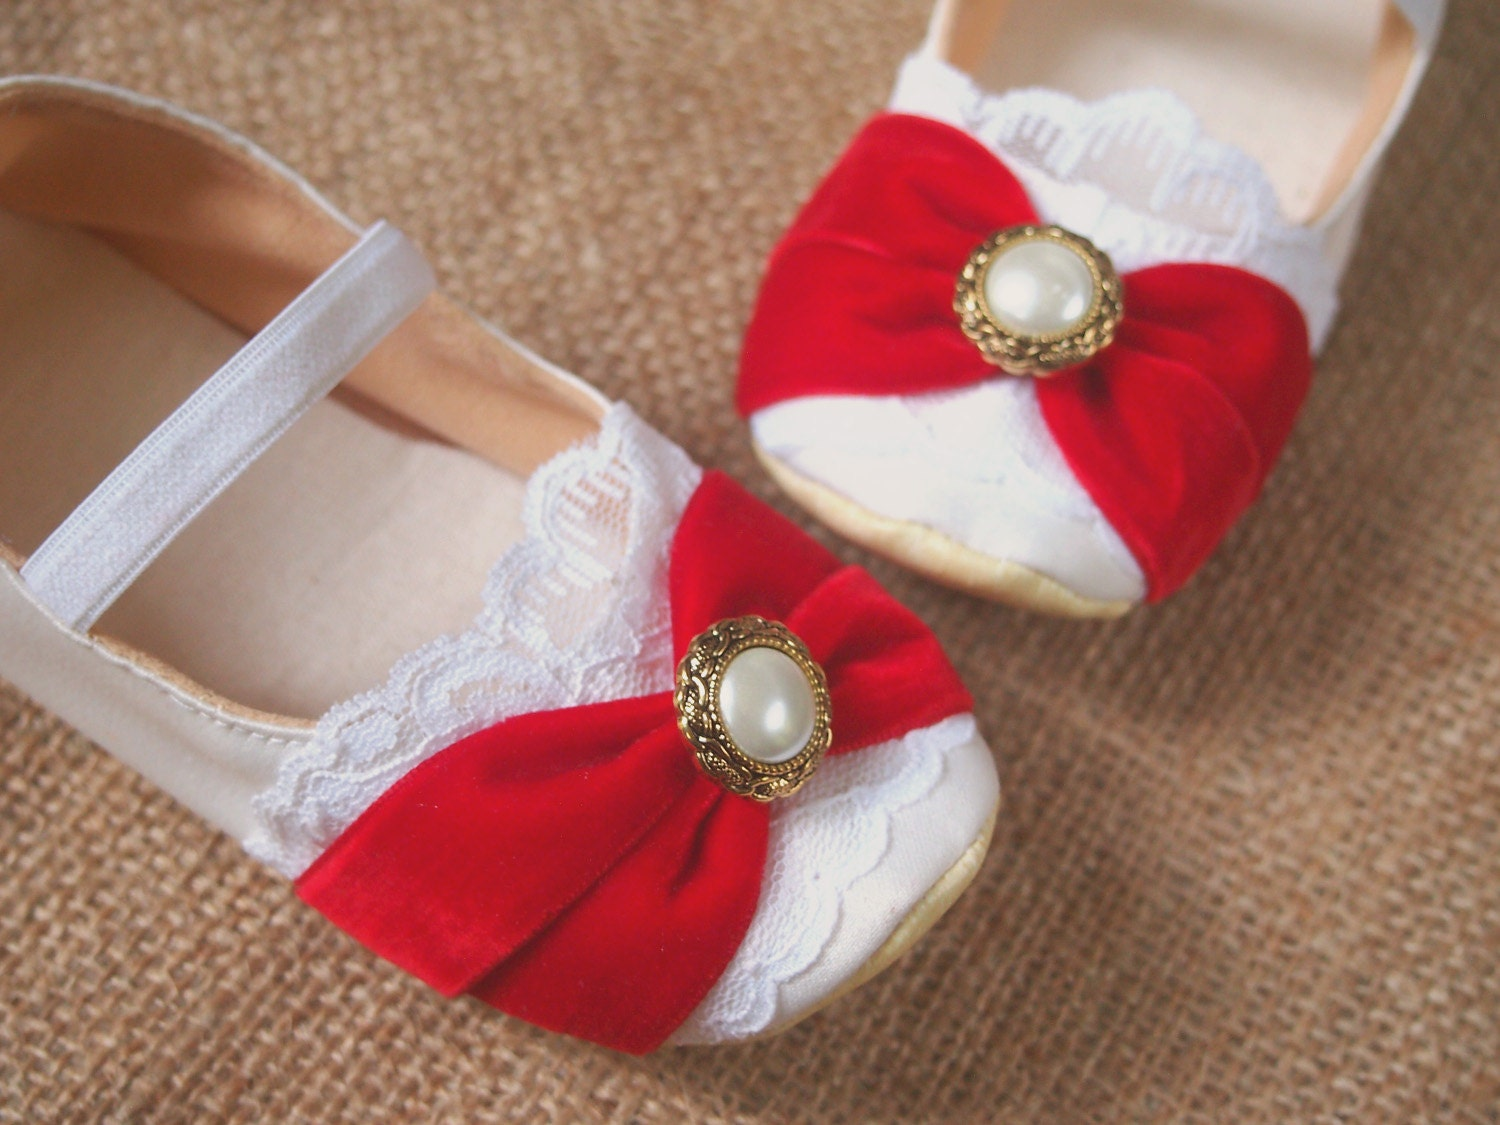 Red dress shoes for toddler girls